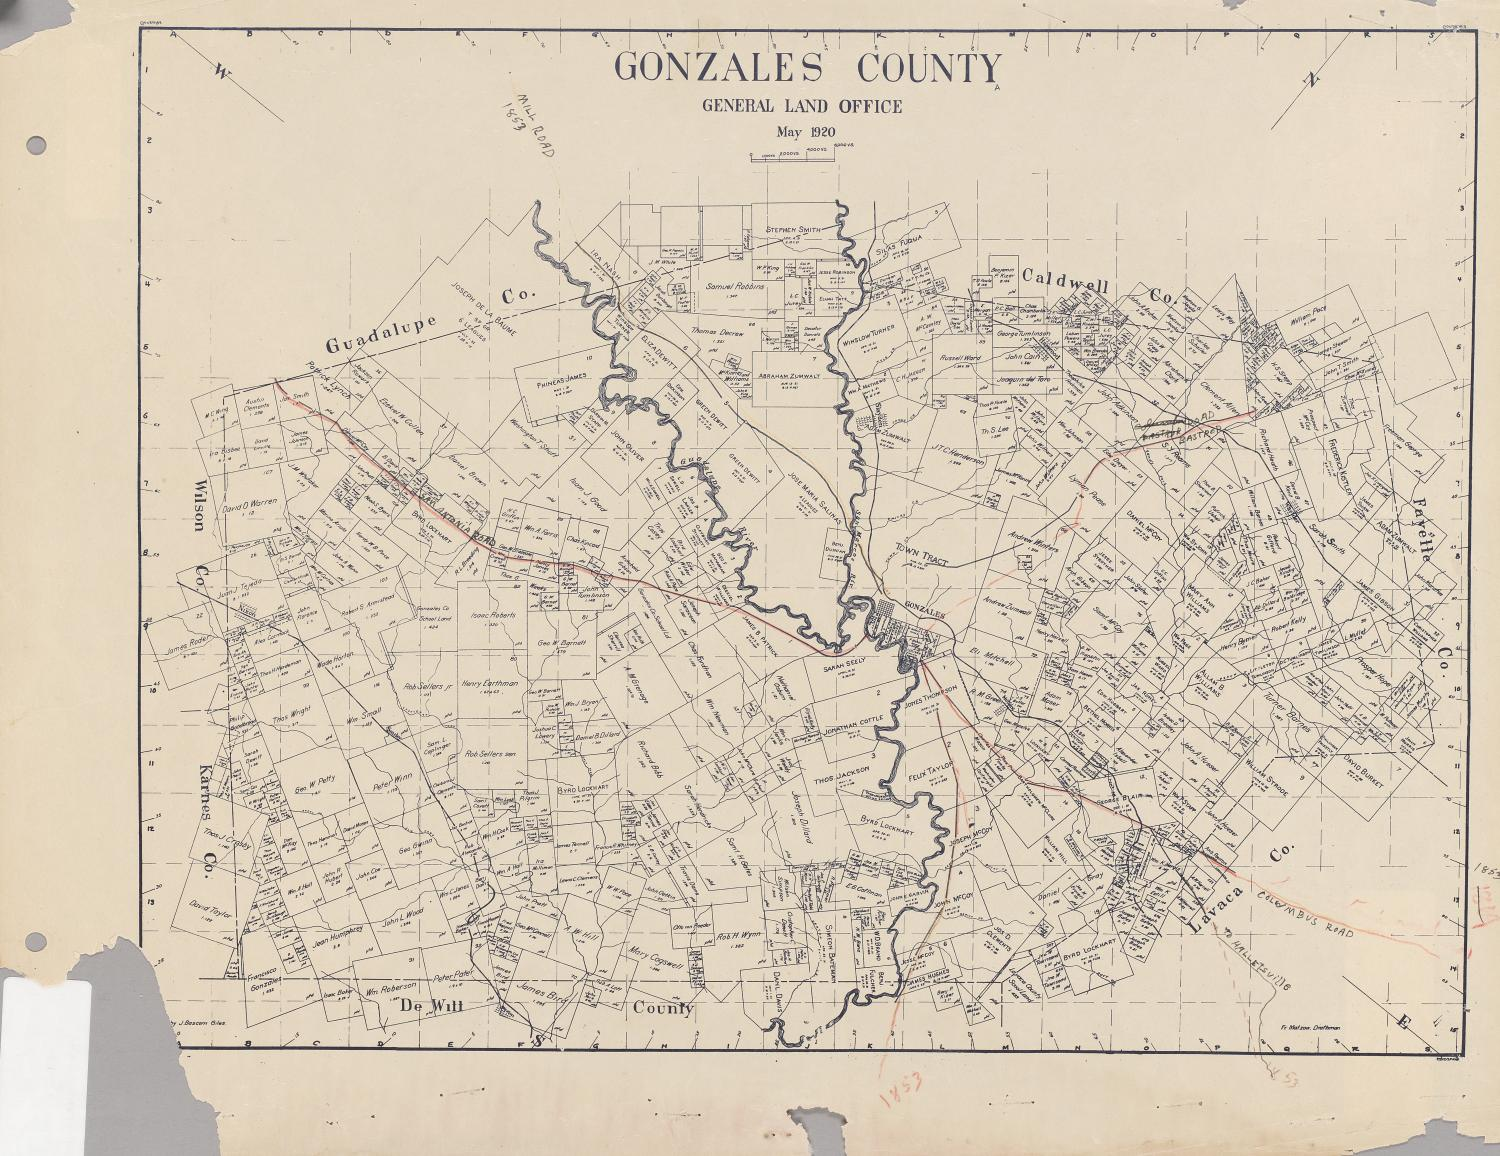 Gonzales County - The Portal to Texas History on rhome texas county map, brown county, caldwell county, marshall county texas map, colorado county, madisonville county texas map, collingsworth county texas map, dewitt county, brownwood county texas map, gonzales texas on a map, karnes county, colorado county texas map, gonzales texas aerial, lavaca county, zavala county, fayette county texas road map, harrison county texas map, fannin county, harris county, guadalupe county texas map, bryan county texas map, gonzales texas 2014, benton county texas map, adams county texas map, beaumont county texas map, bell county, wilson county, mclennan county, lavaca county texas map, kingsville county texas map, comal county, guadalupe county, jackson county, burnet county, san antonio county texas map, bexar county, pasadena county texas map,